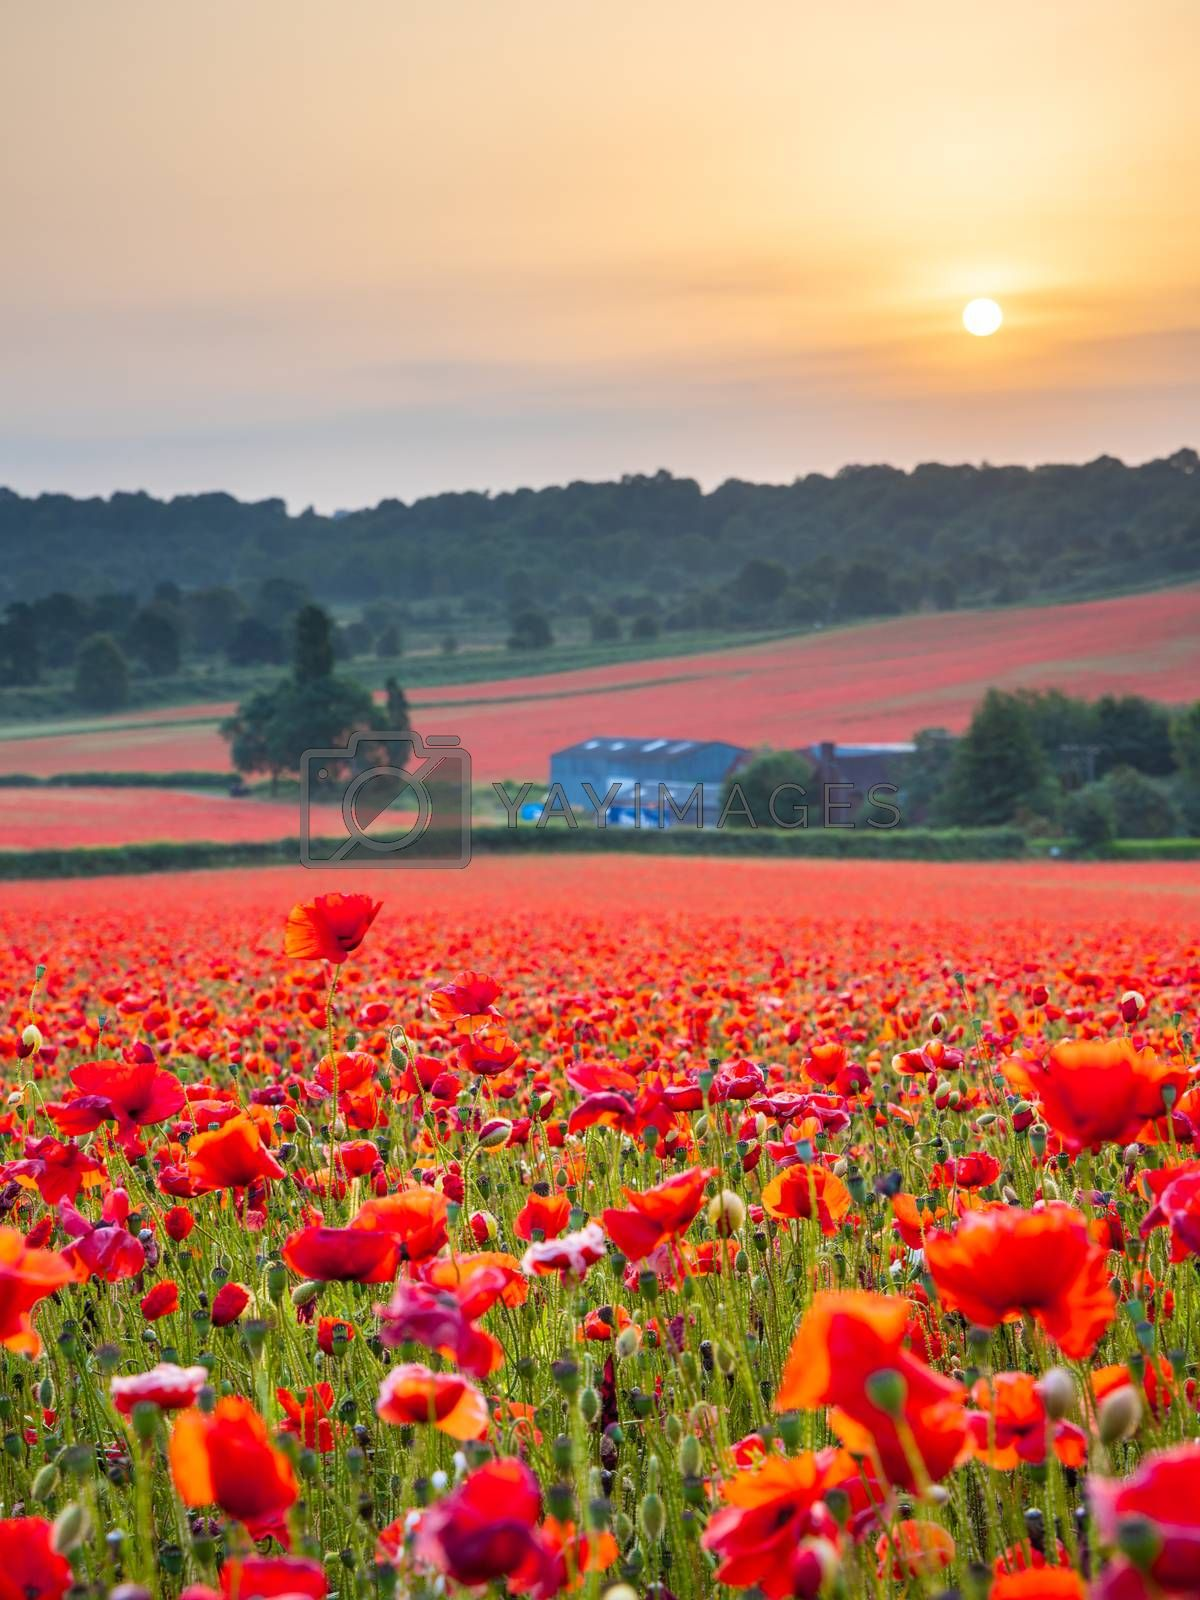 Royalty free image of Beautiful Poppy Field at Brewdley, West Midlands at Dawn by kstphotography